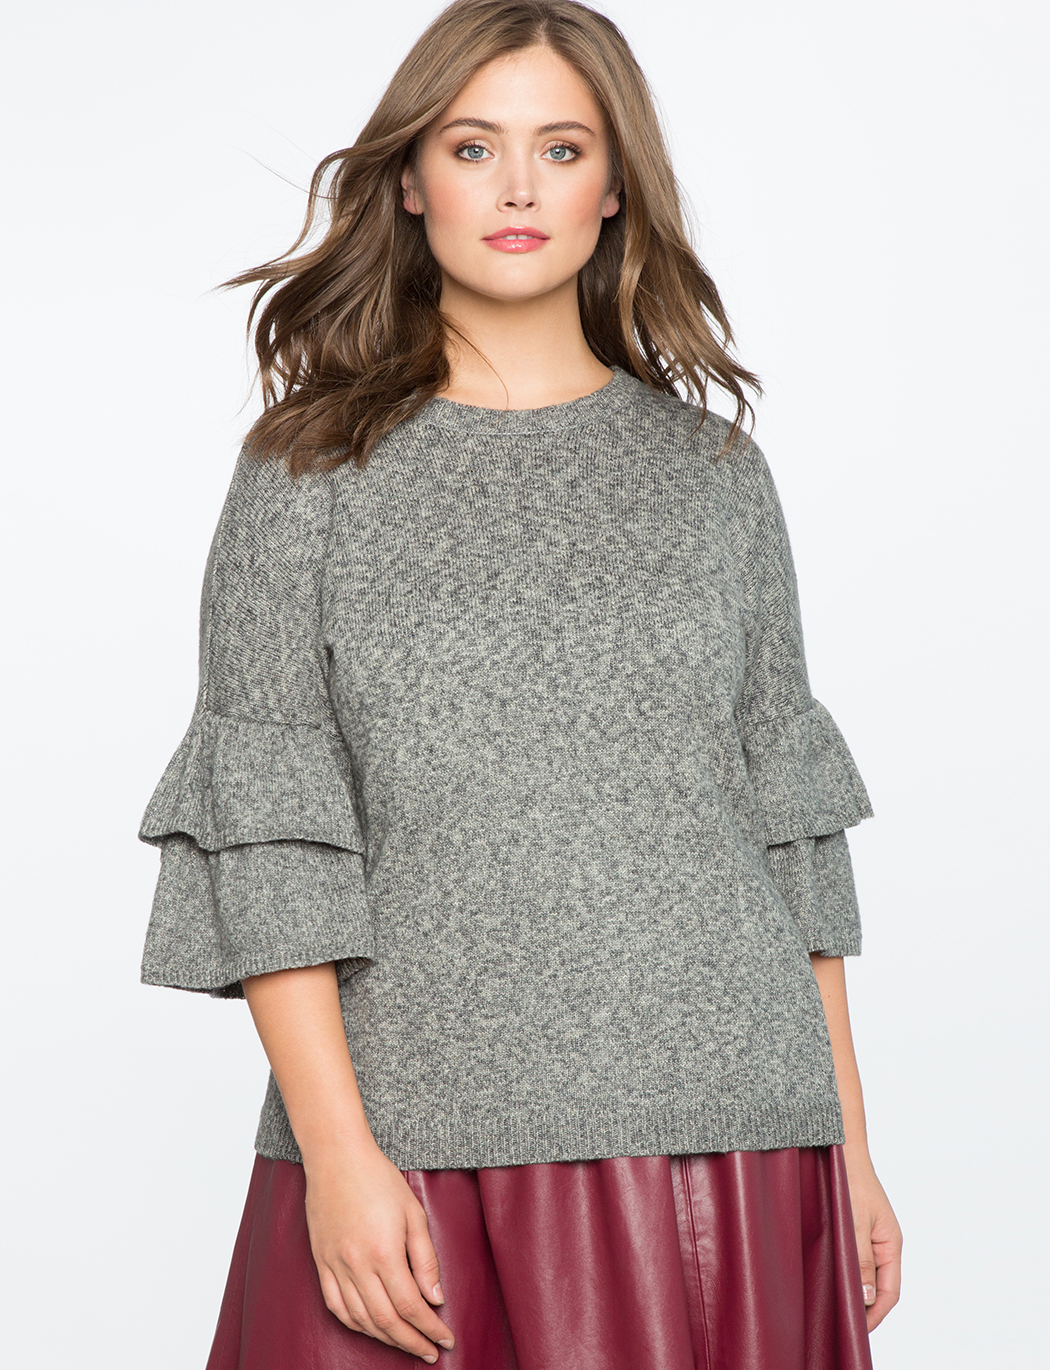 8e7f1347fc9 Tiered Ruffle Sleeve Sweater | Women's Plus Size Tops | ELOQUII